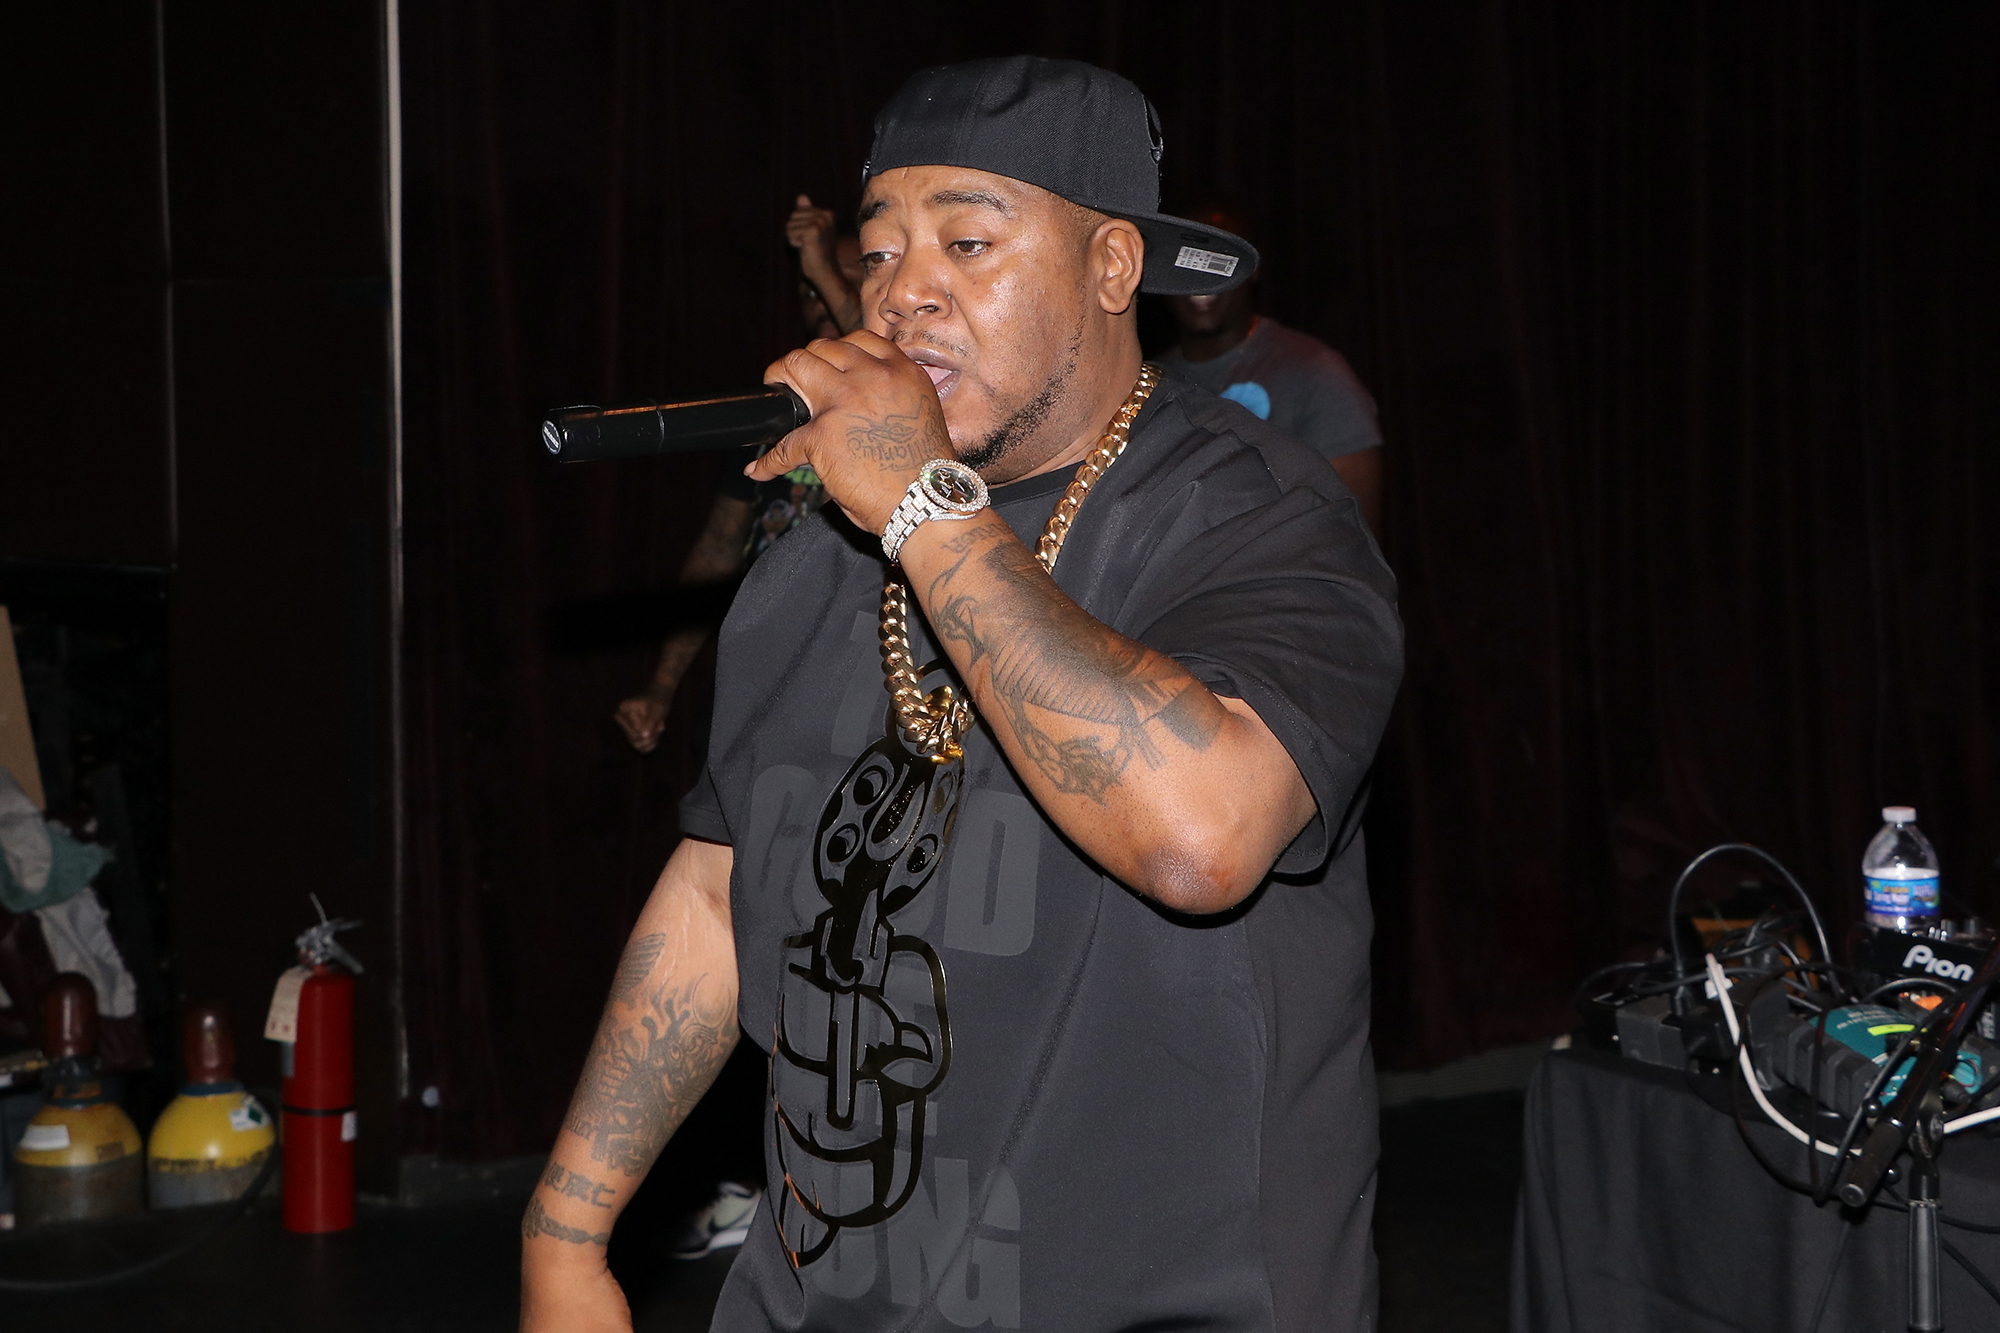 Twista performs at the Yeezy Taught Me In Concert in New York on July 14, 2017.